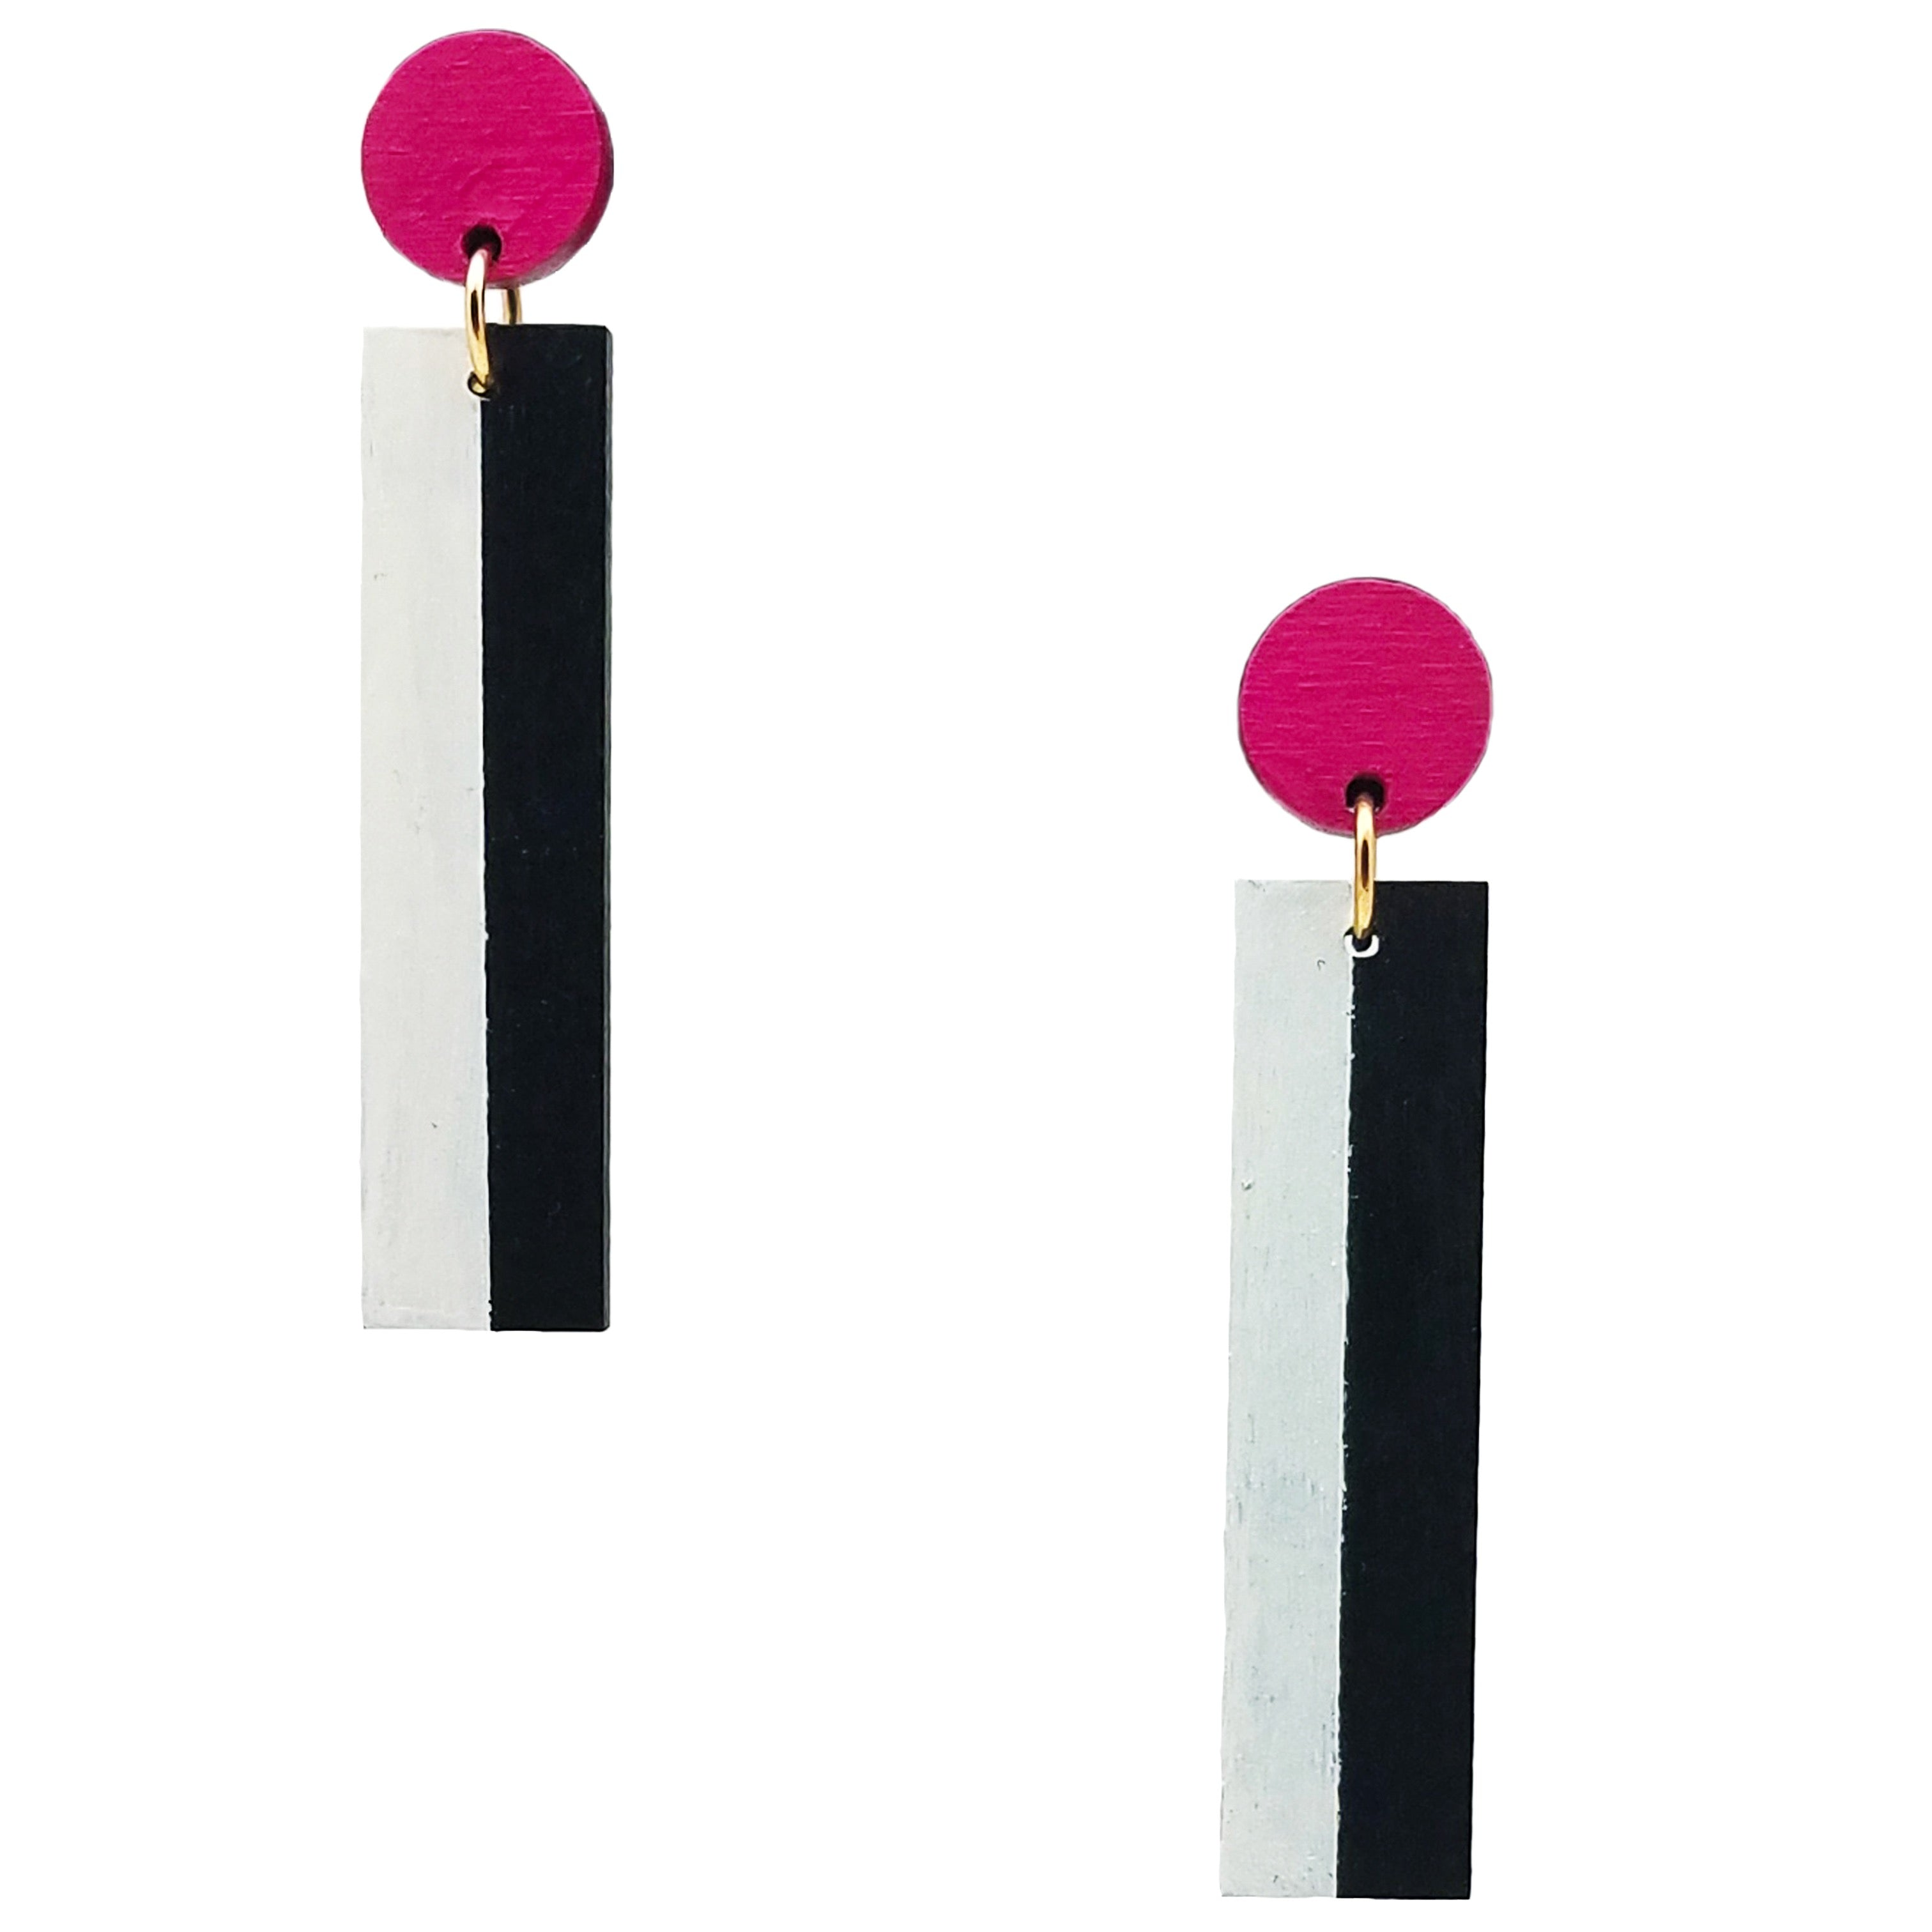 Geometric magenta, white, and black color blocked statement earrings by the brand SCOTCHBONNET.